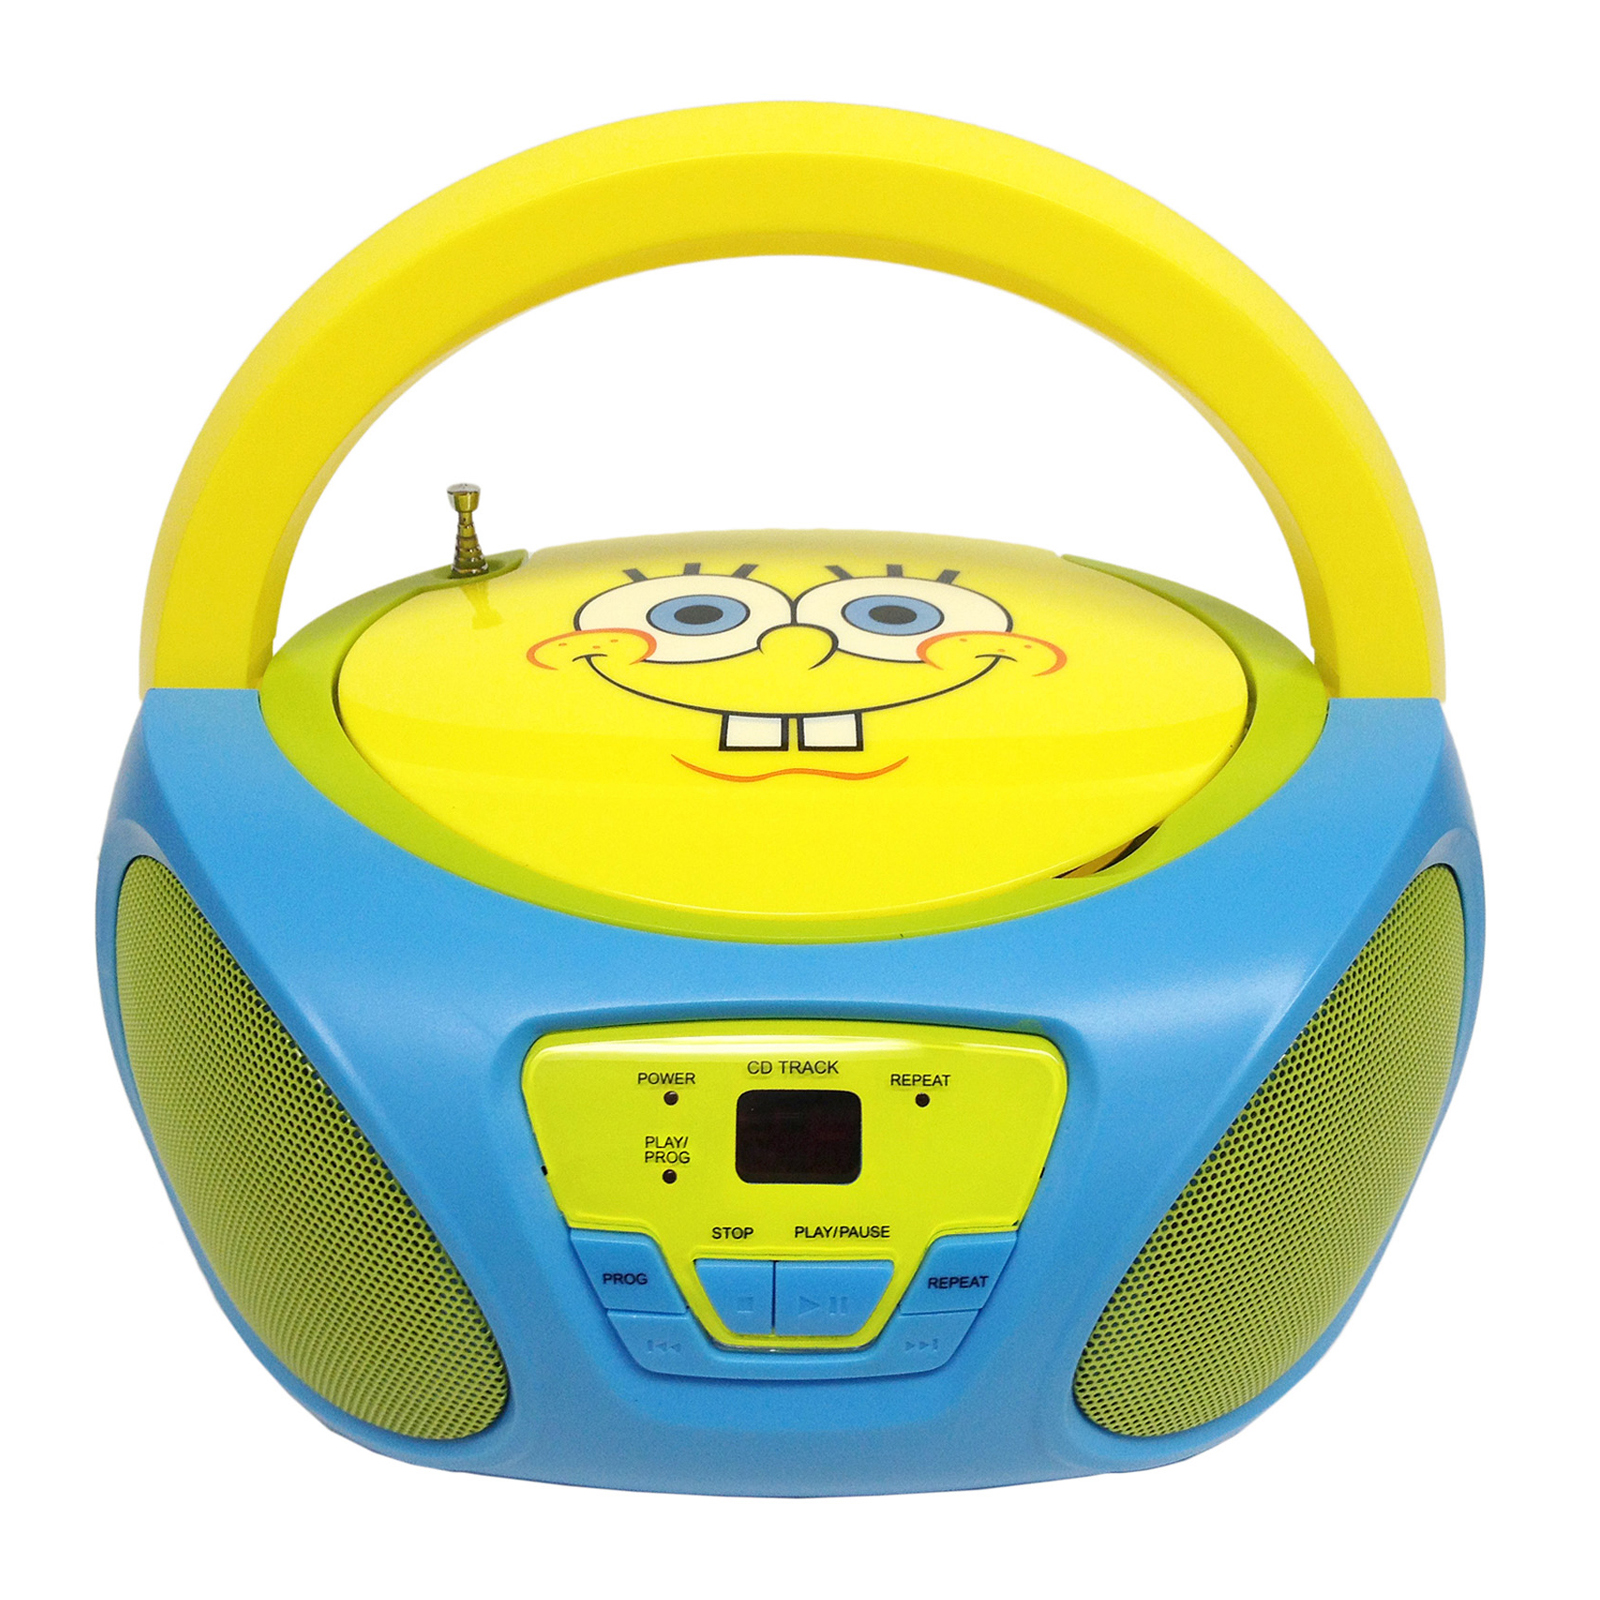 SpongeBob SquarePants CD Boombox with AM FM Radio Walmart